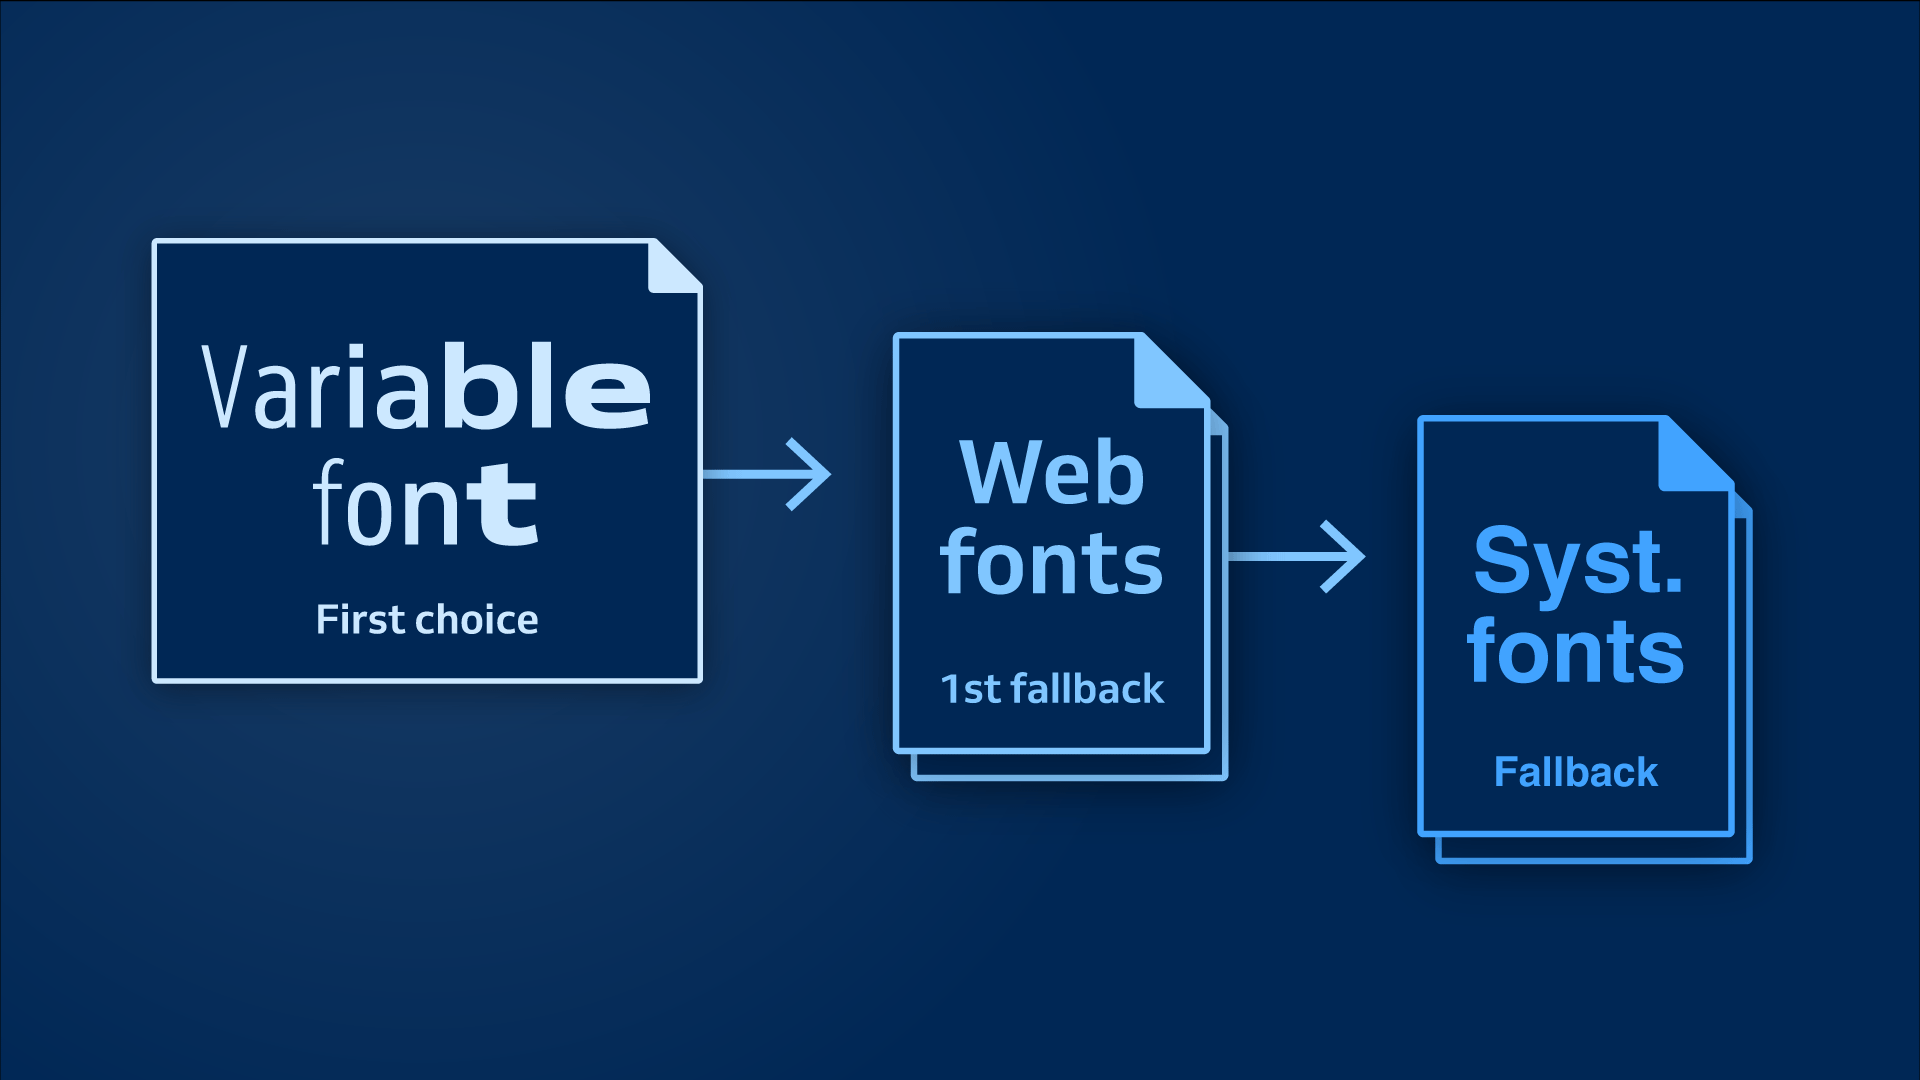 Use variable Fonts with web fonts as the first fallback and system fonts as the last